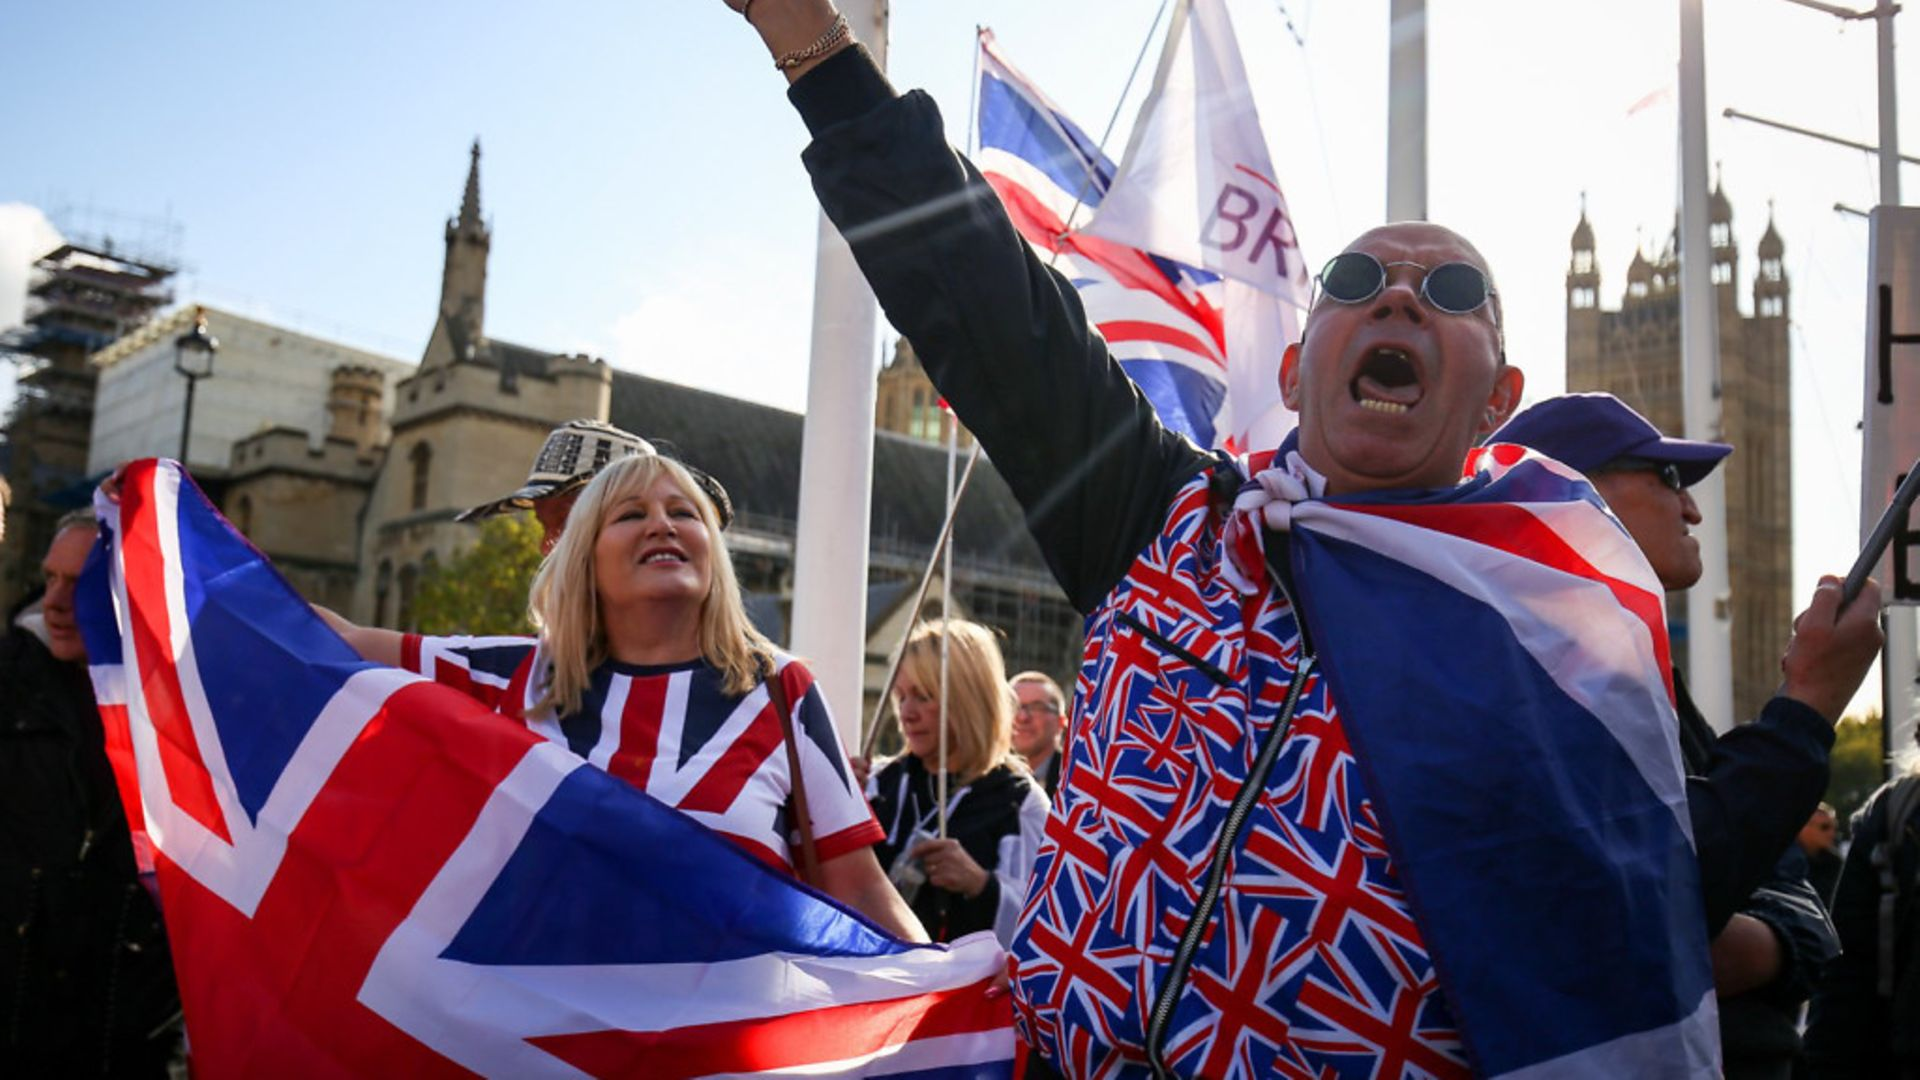 Pro Brexit supporters outside parliament - Credit: Jacob King/PA